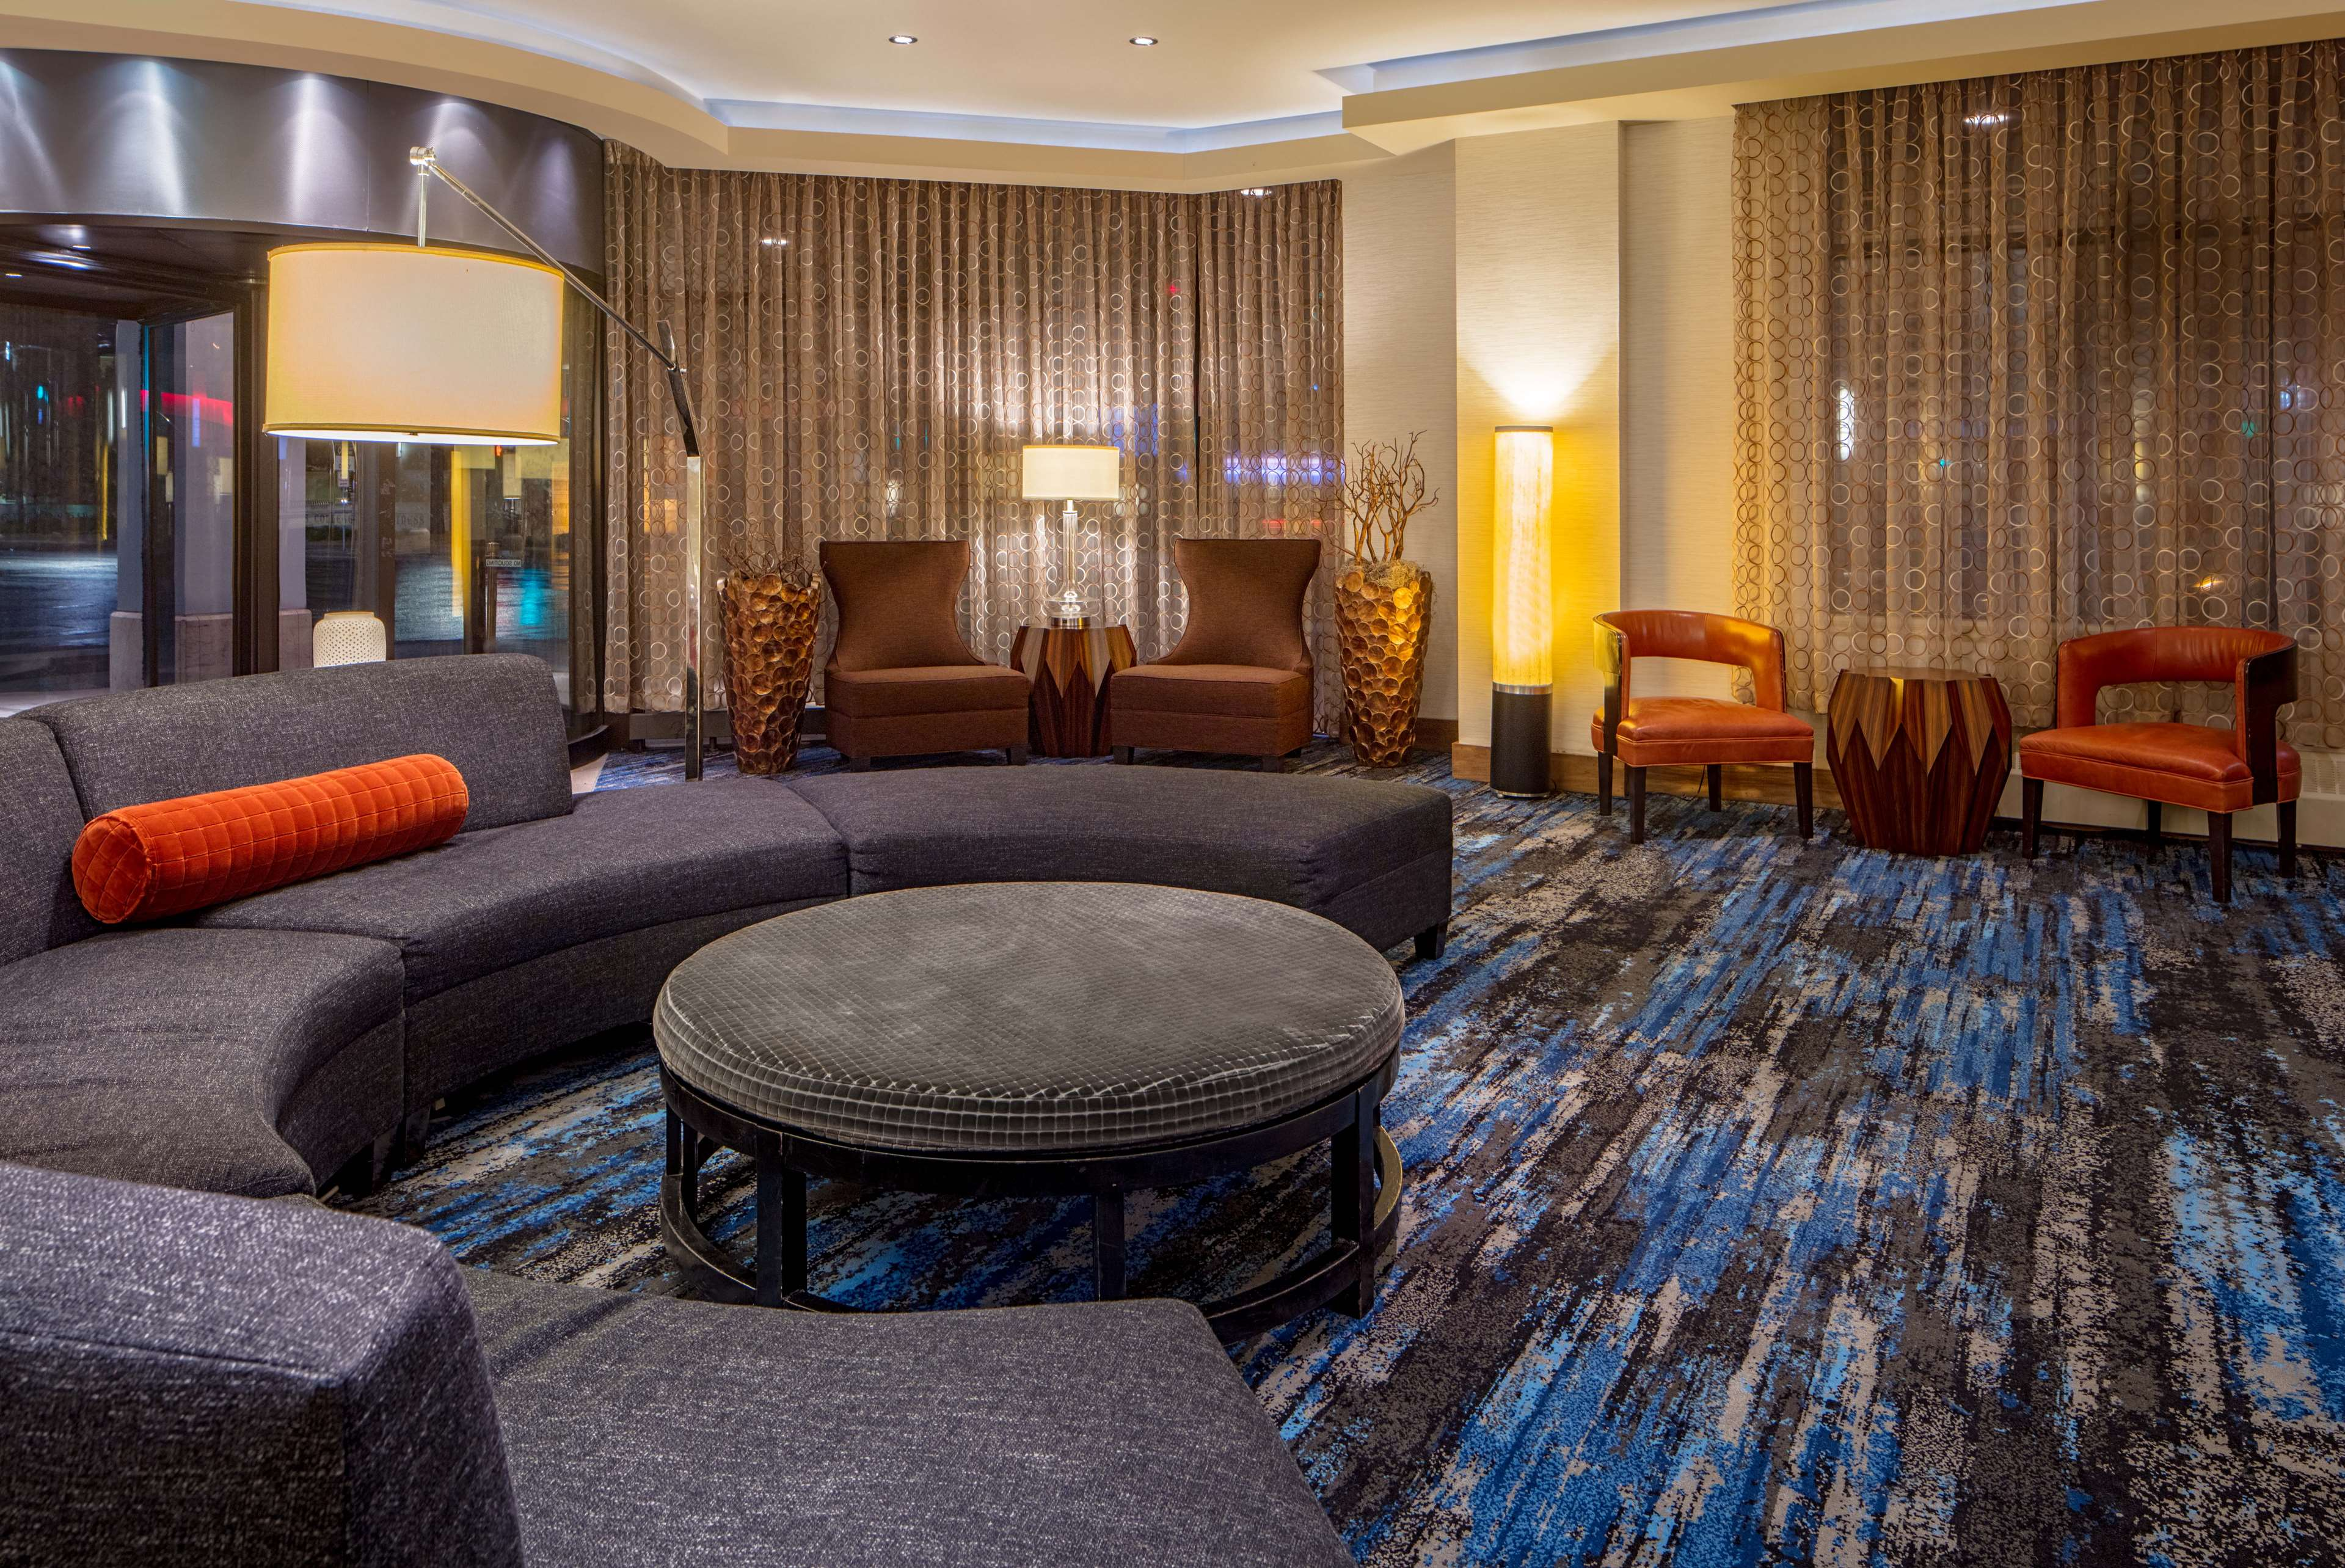 DoubleTree Suites by Hilton Hotel Minneapolis image 2